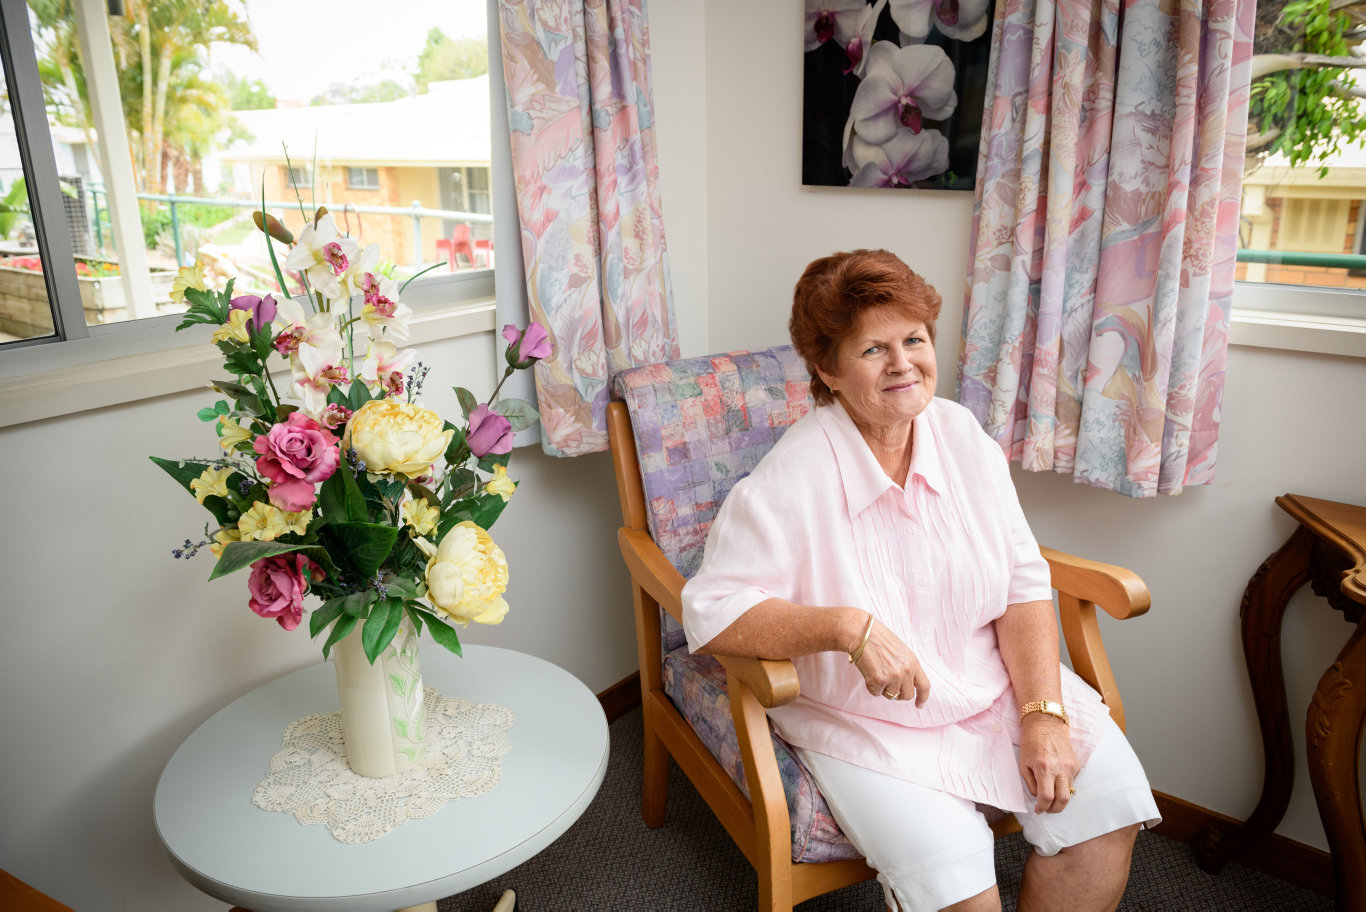 Where: Riverlea Aged Care, 1 River Terrace, BundabergWho: Staff member Rhonda Neilson